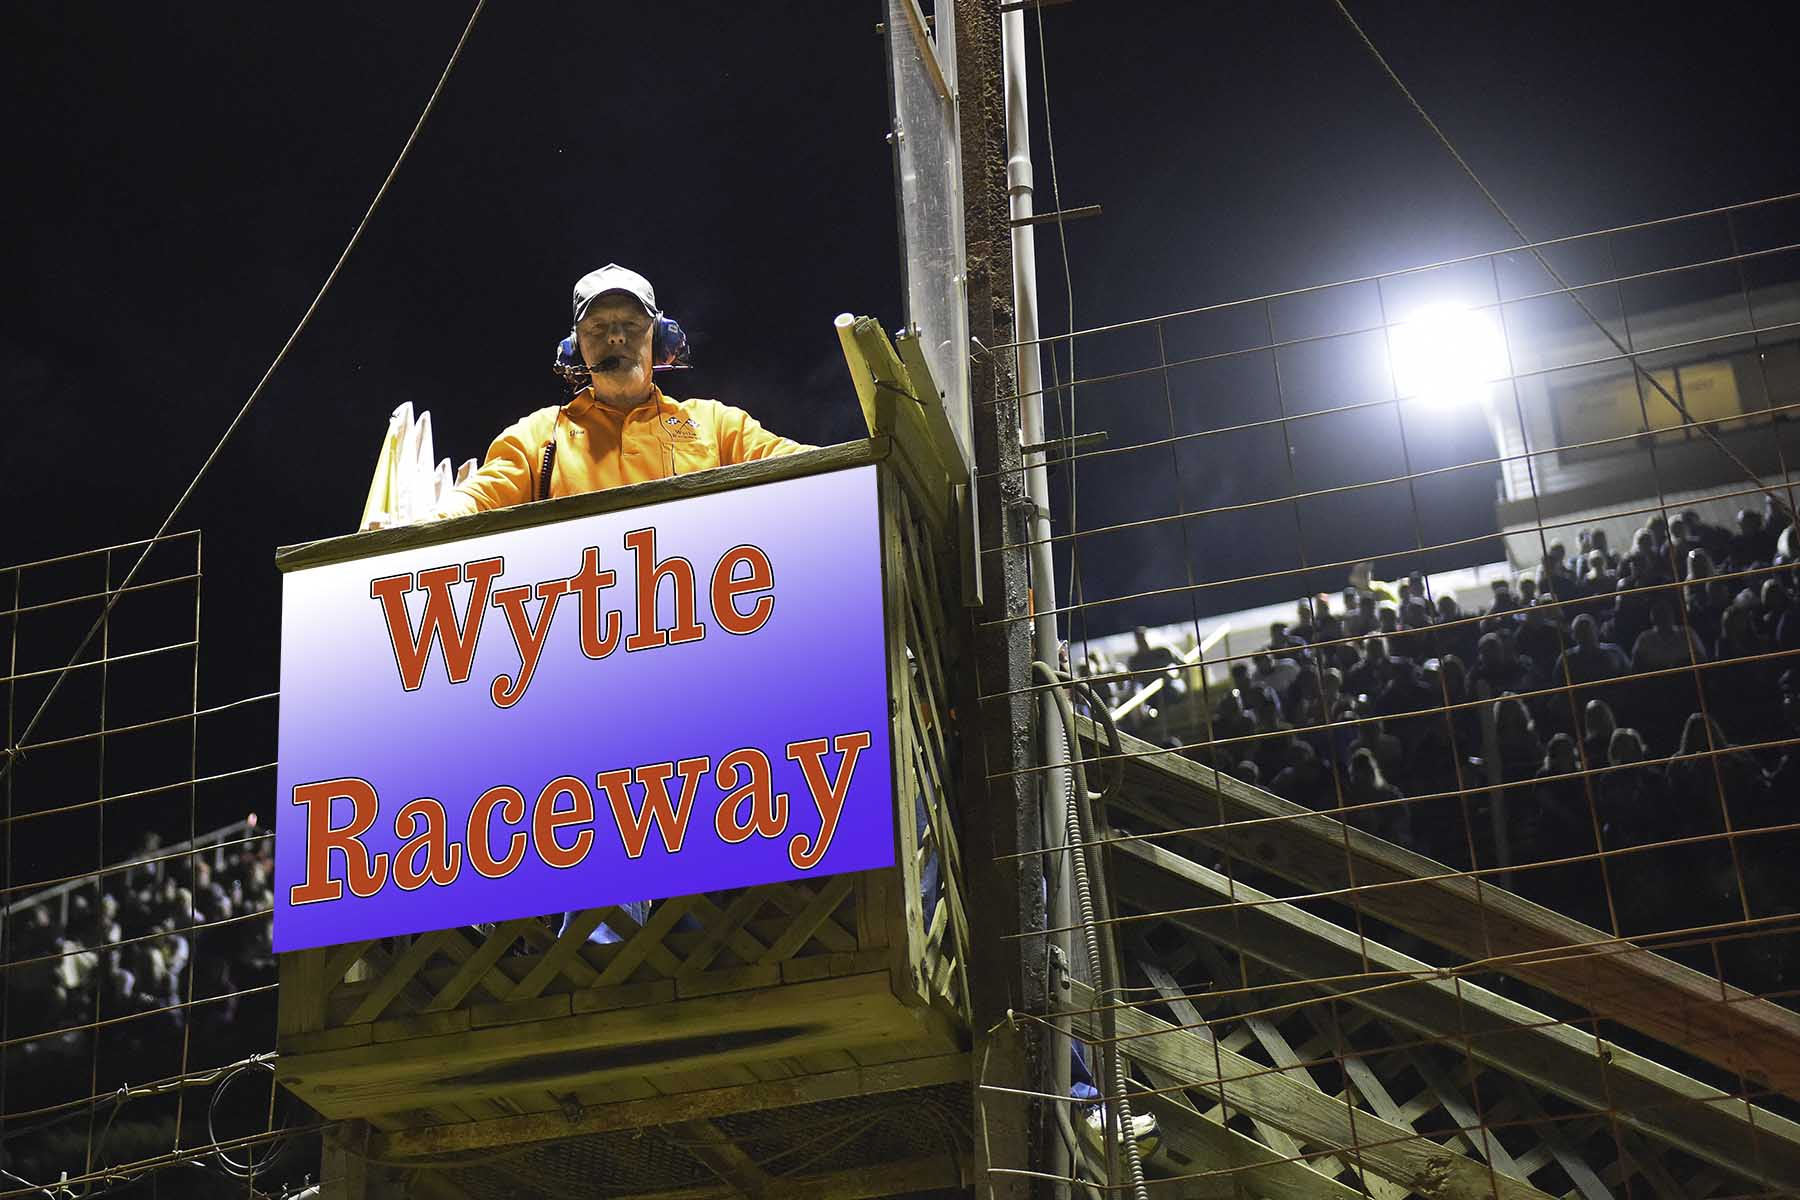 Wythe Raceway Results September 23, 2017